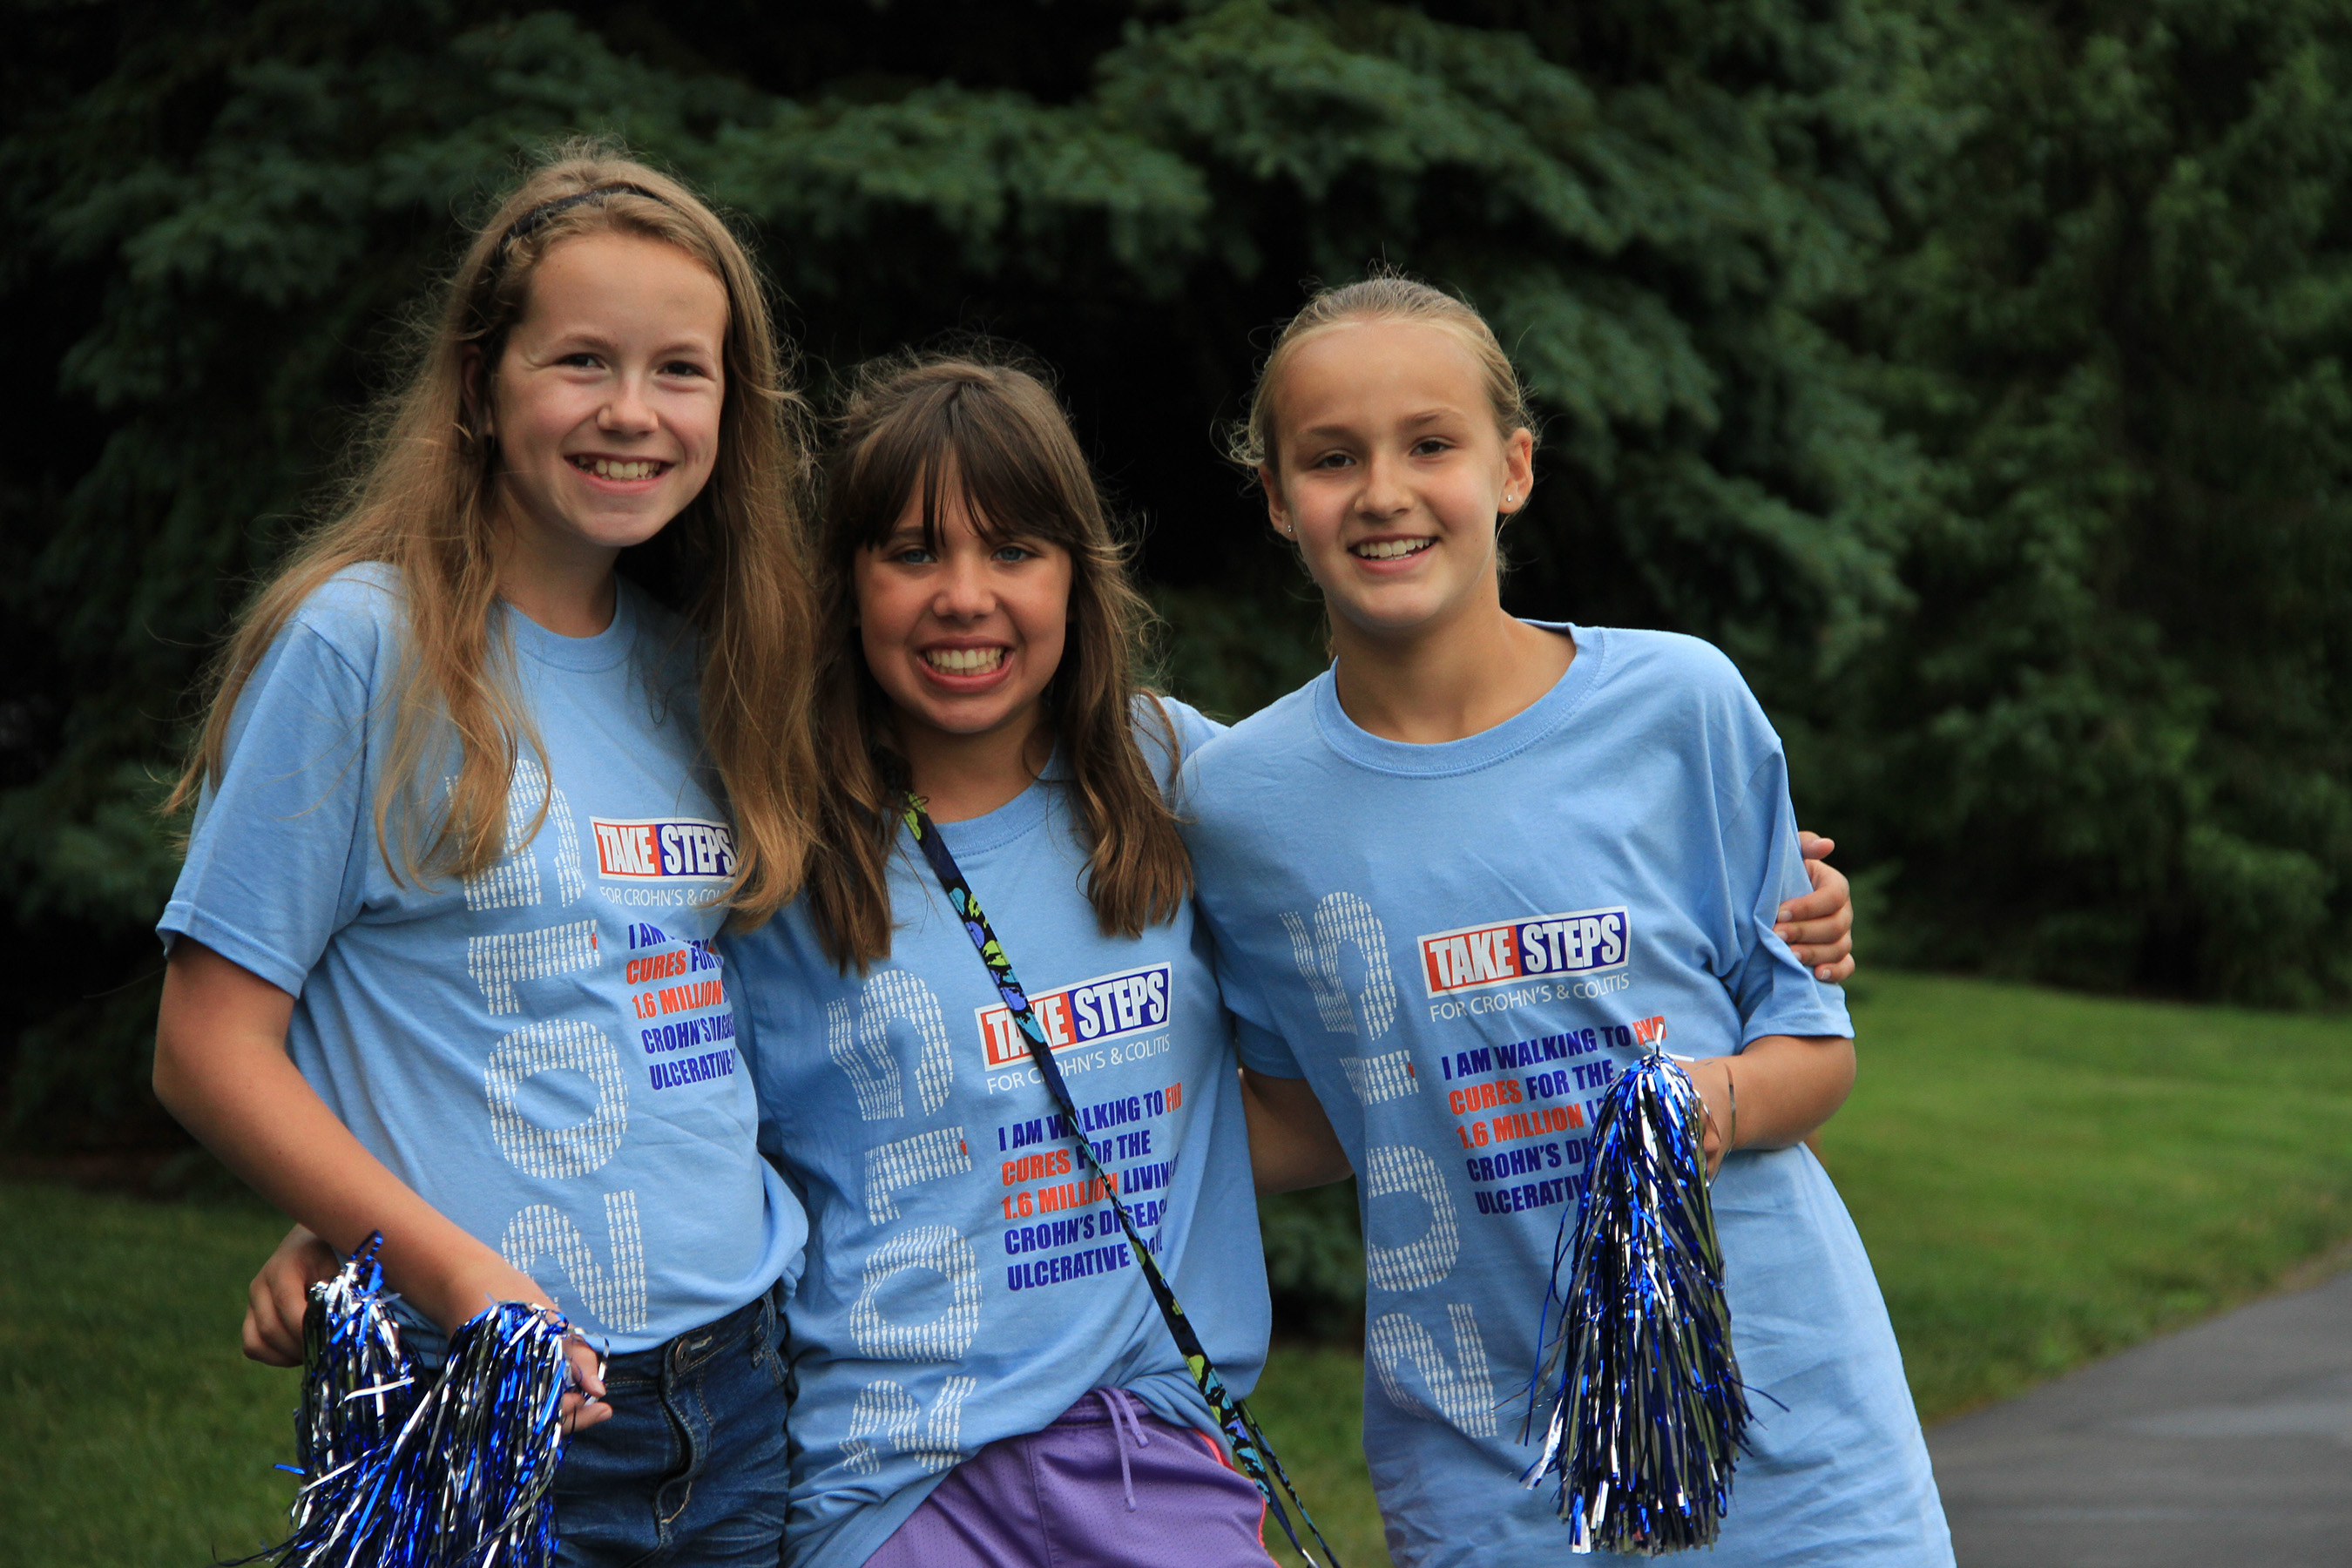 Join us in 2016 to #walkforcures in your community!